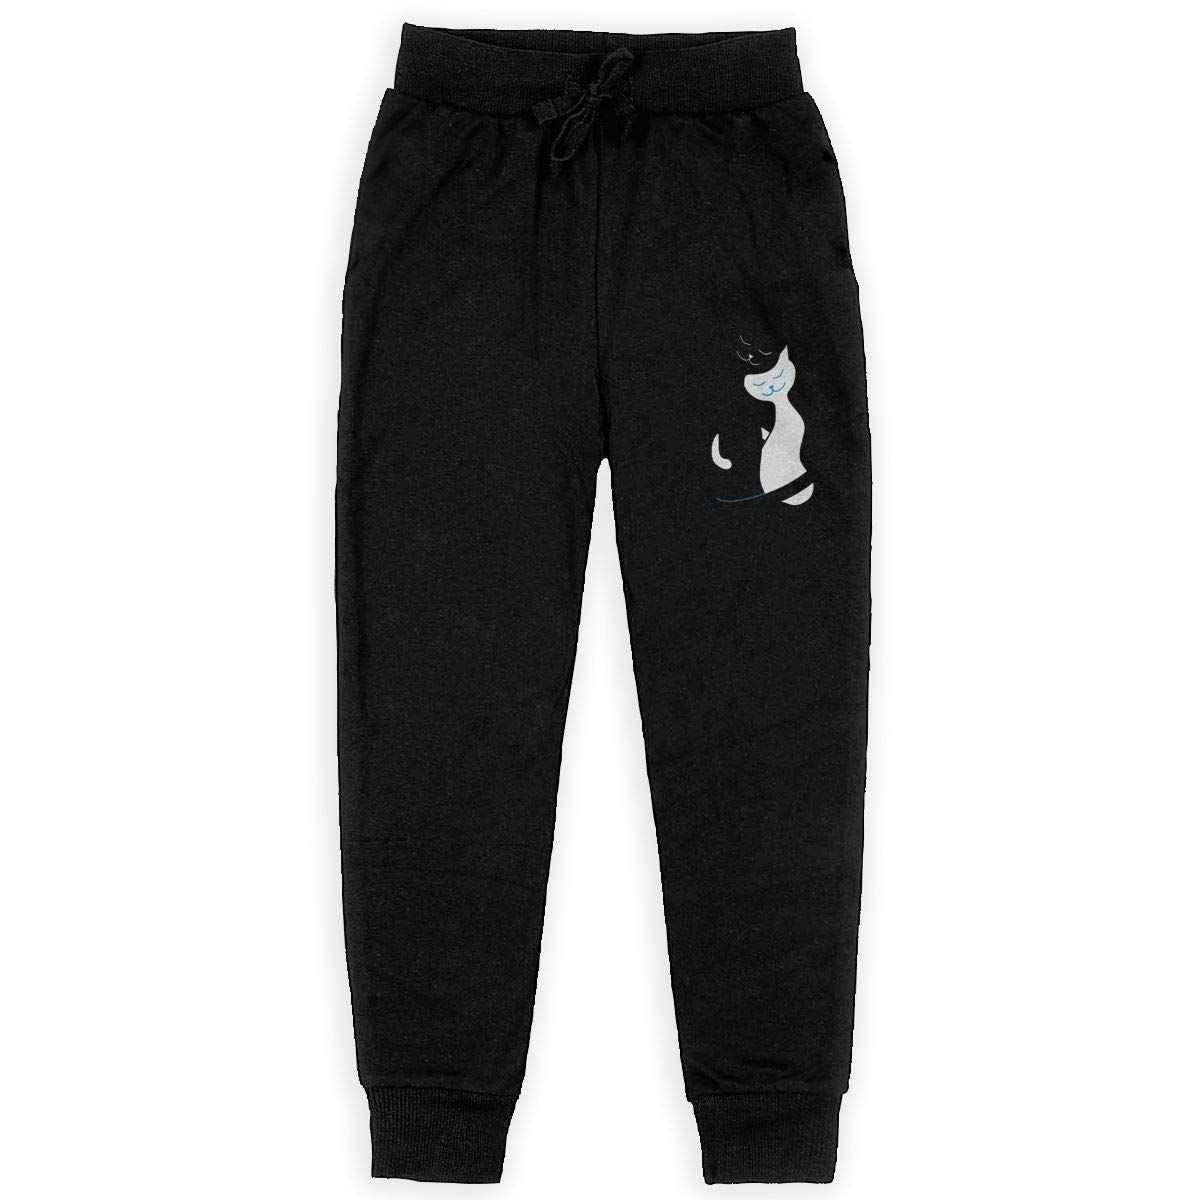 White and Black Cats in Love Boys Sweatpants,Joggers Sport Training Pants Trousers Black